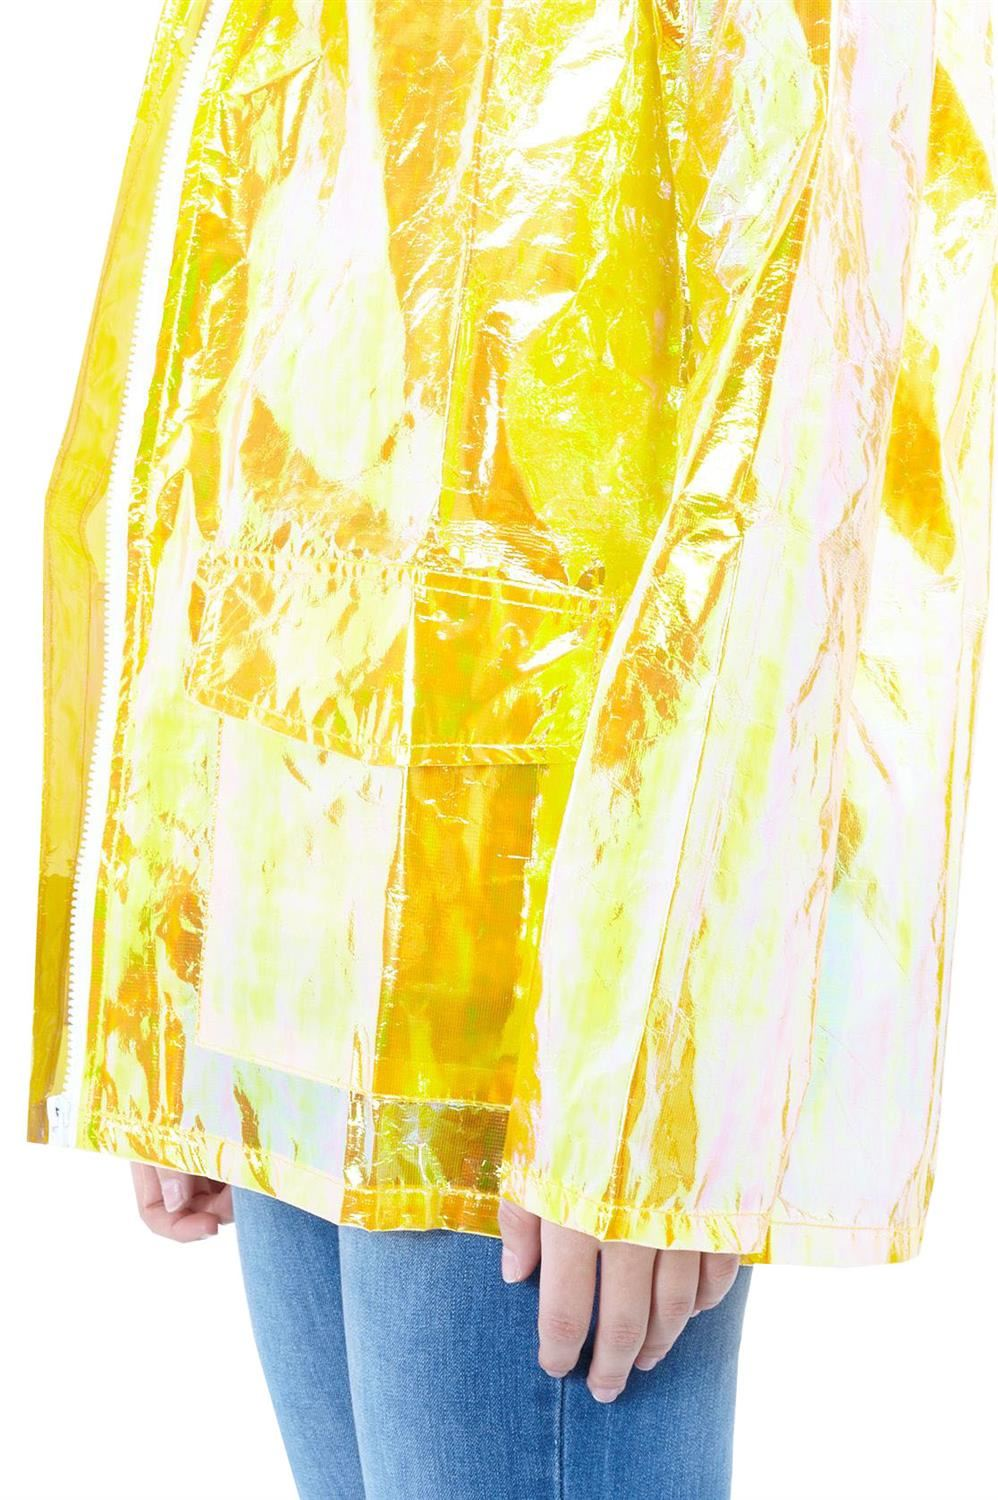 New-Ladies-Unicorn-Holographic-Zipped-Neon-Festival-Mac-Parka-Raincoat-Jacket thumbnail 9